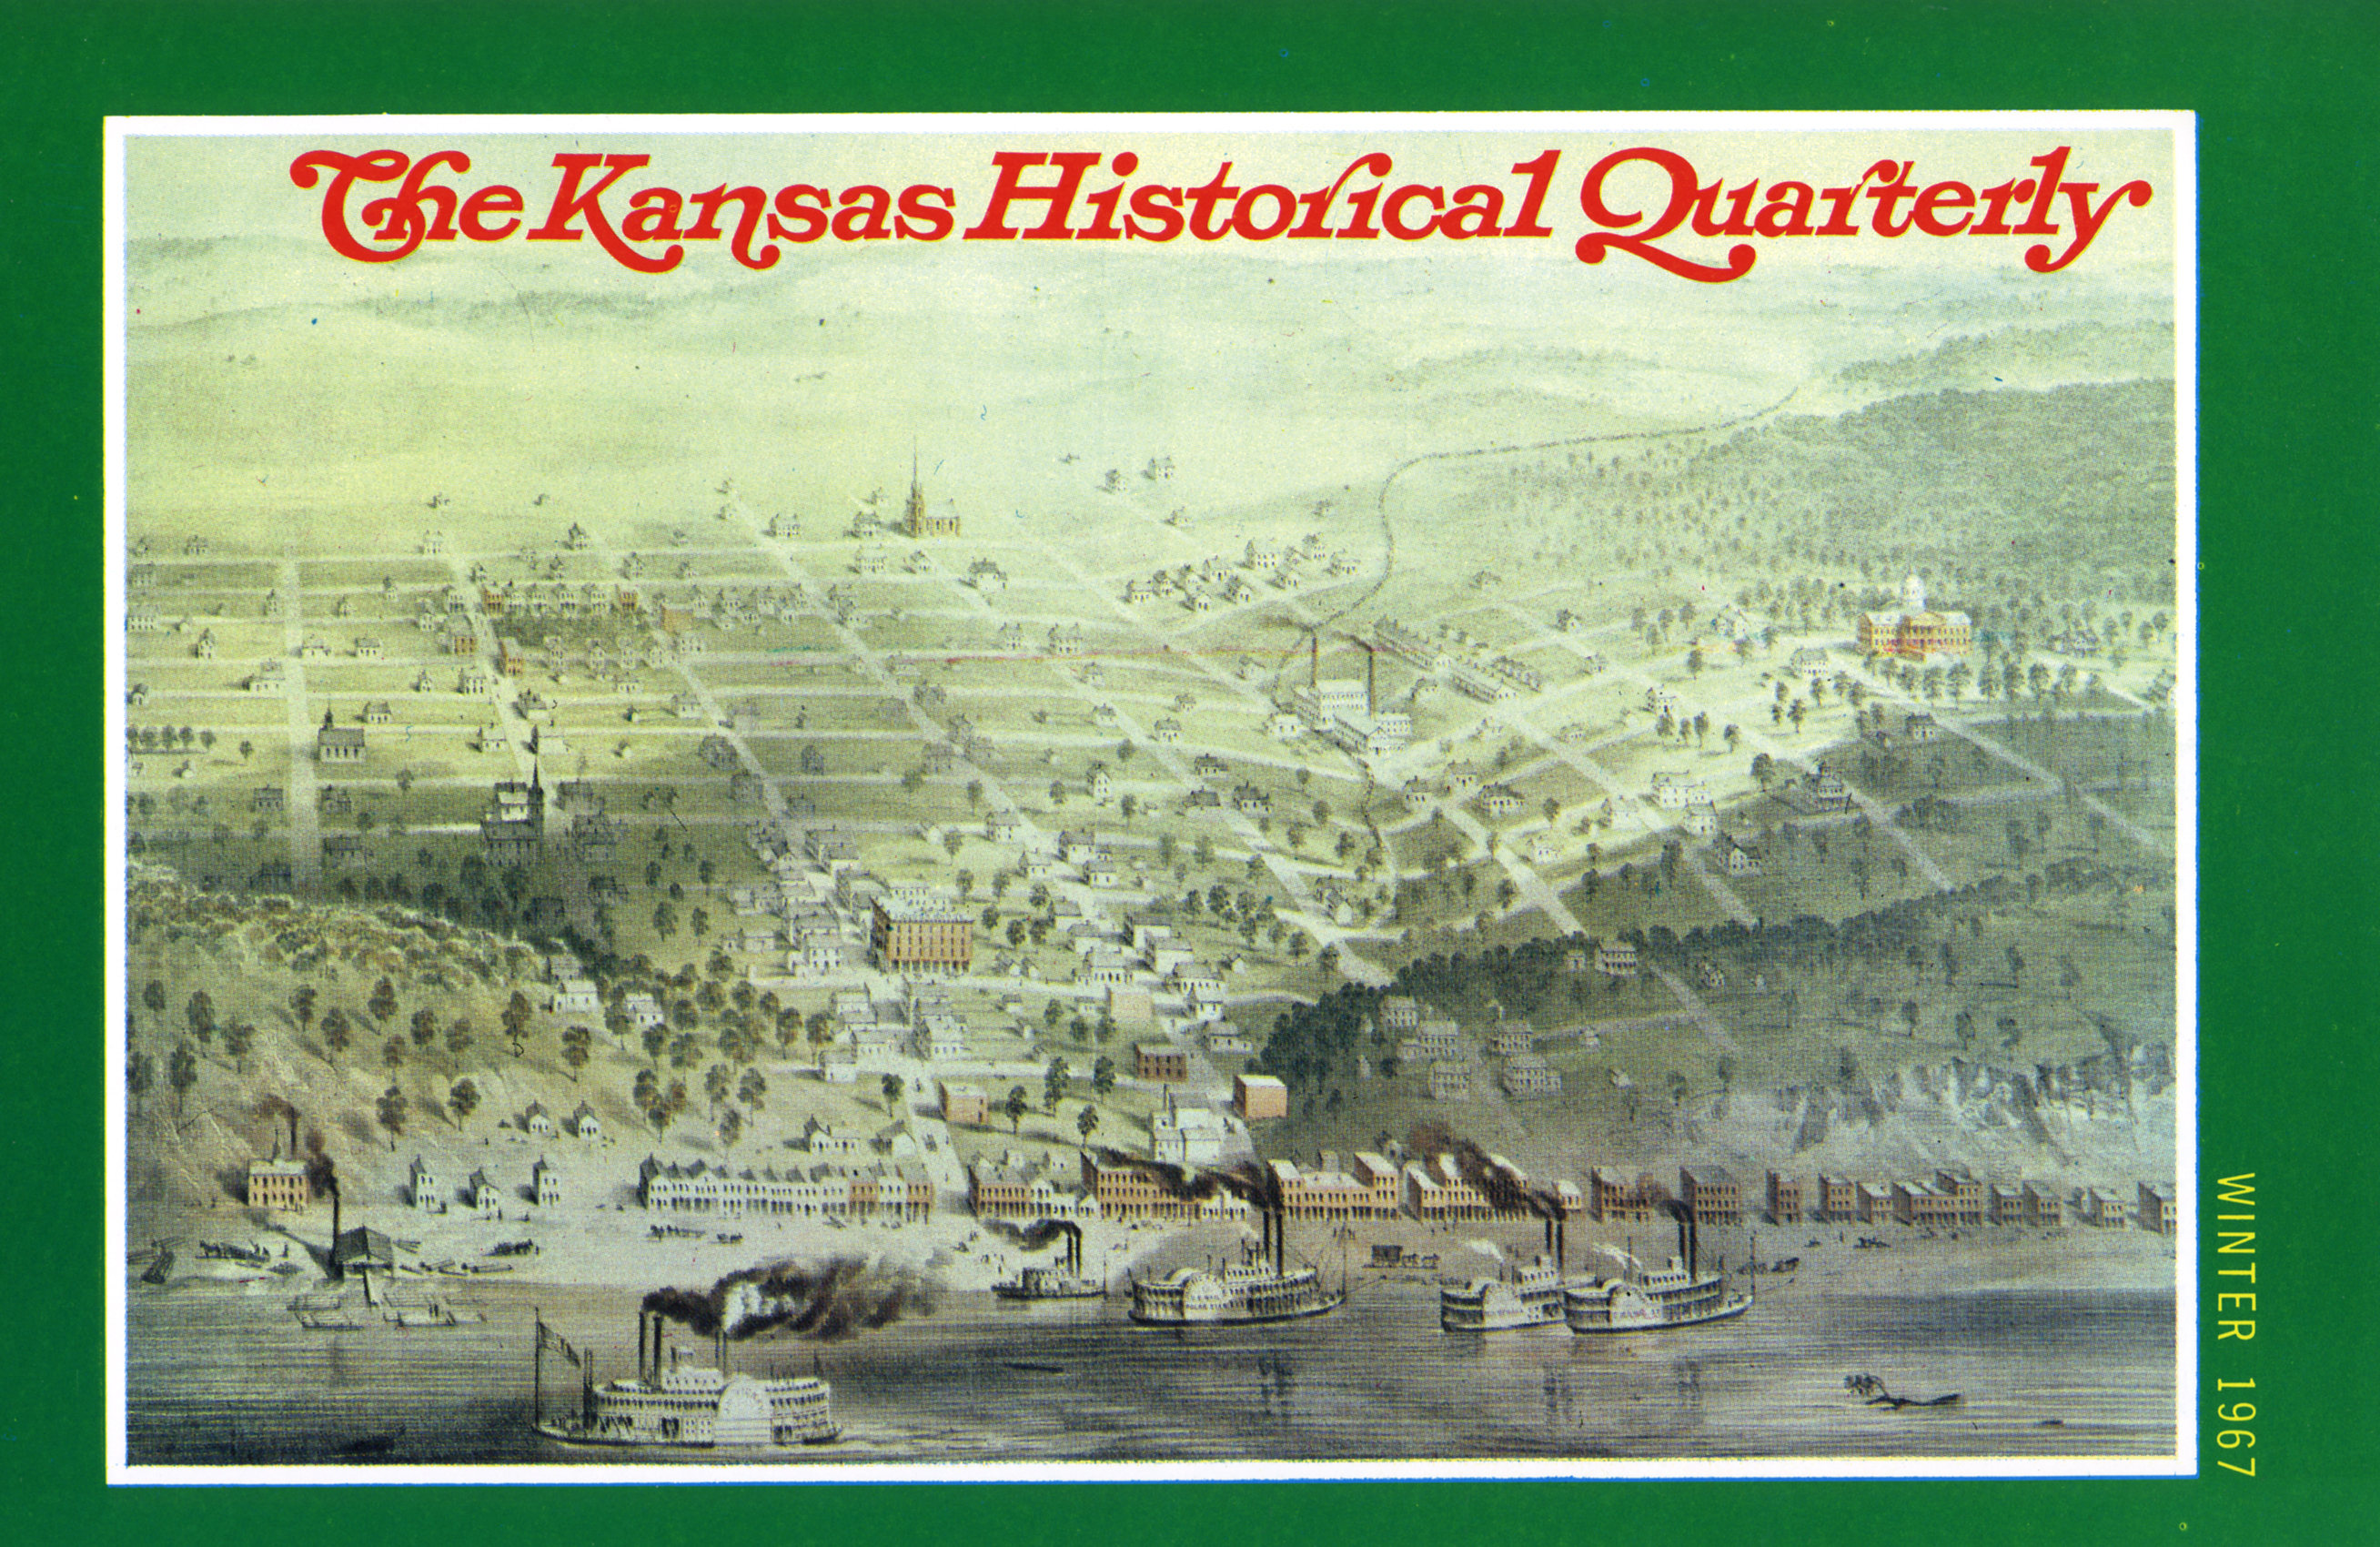 Kansas Historical Quarterly, Winter 1967